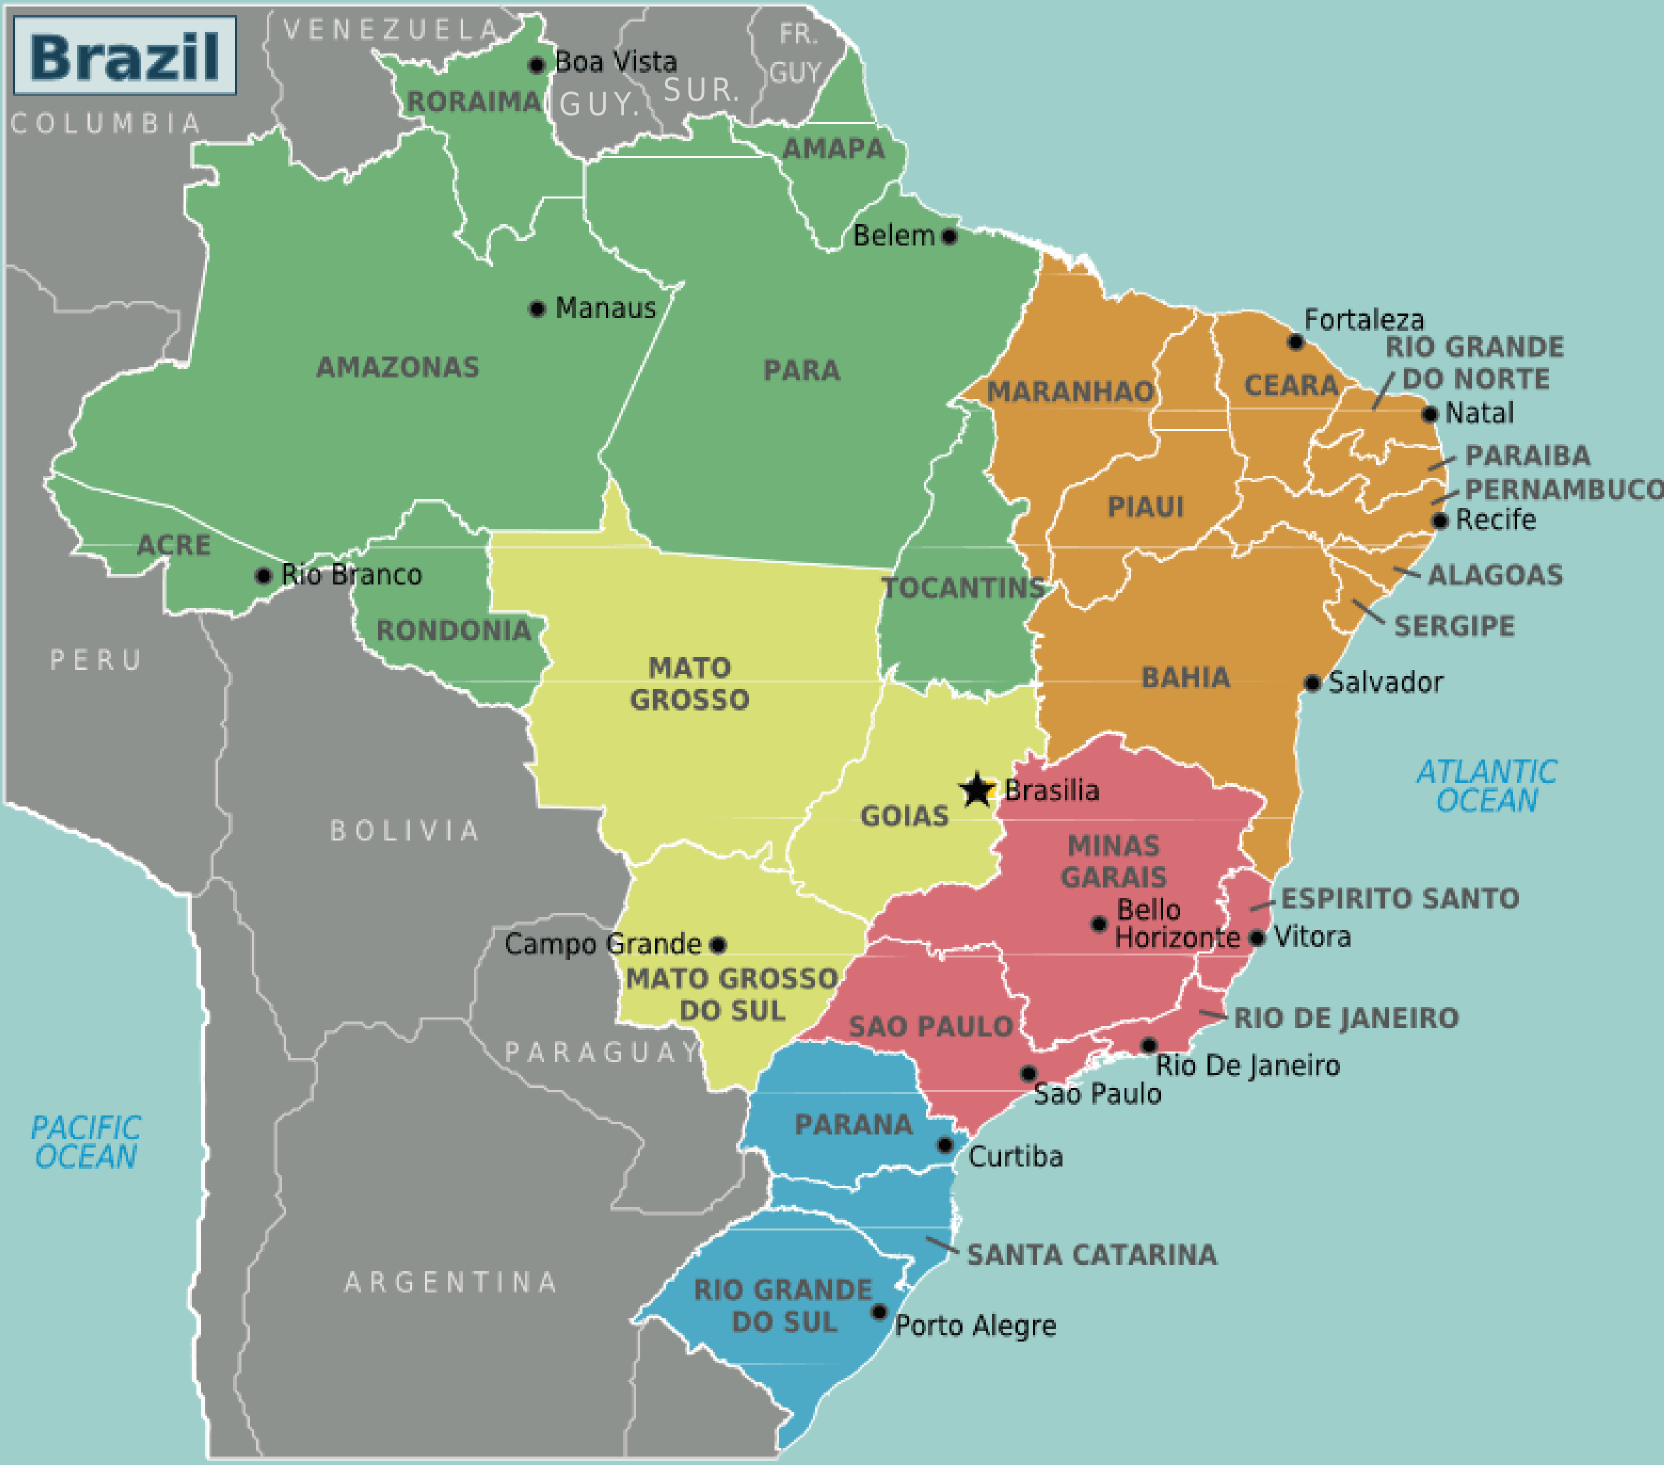 Brazil Regions Mapsofnet - Brazil political map